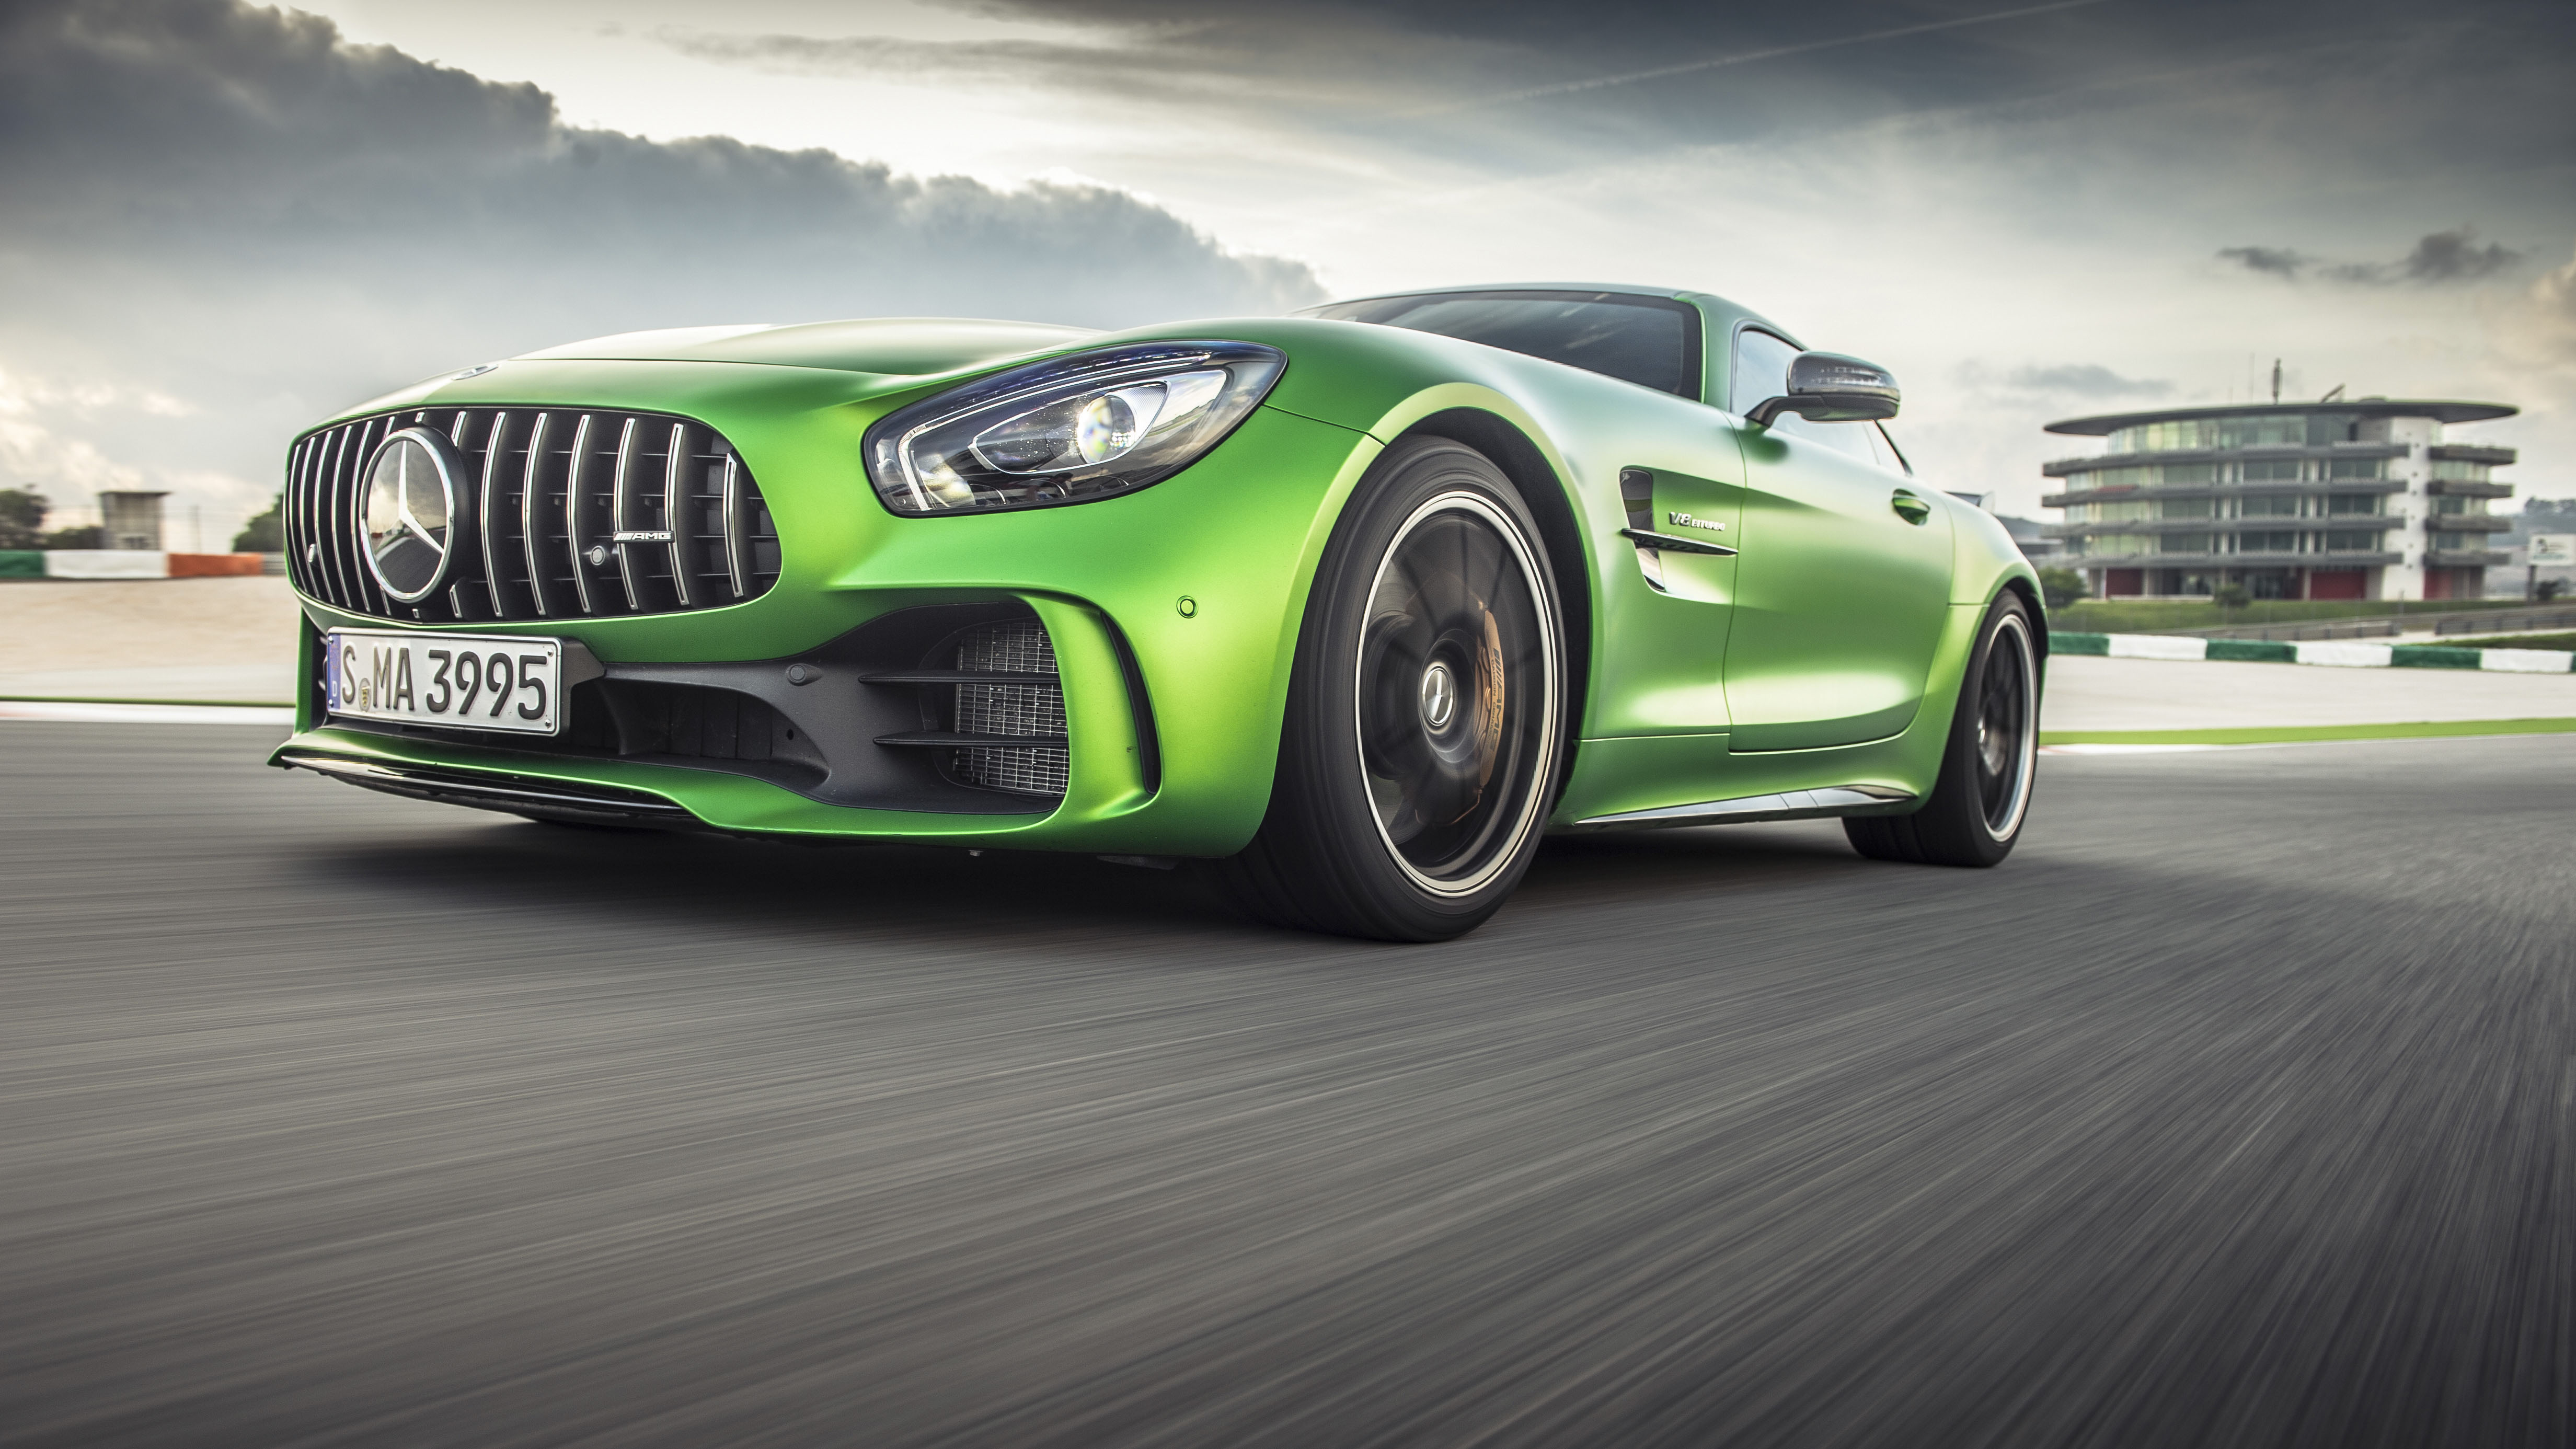 Mercedes Benz Amg Gtr Green 4k Wallpaper Best Wallpapers